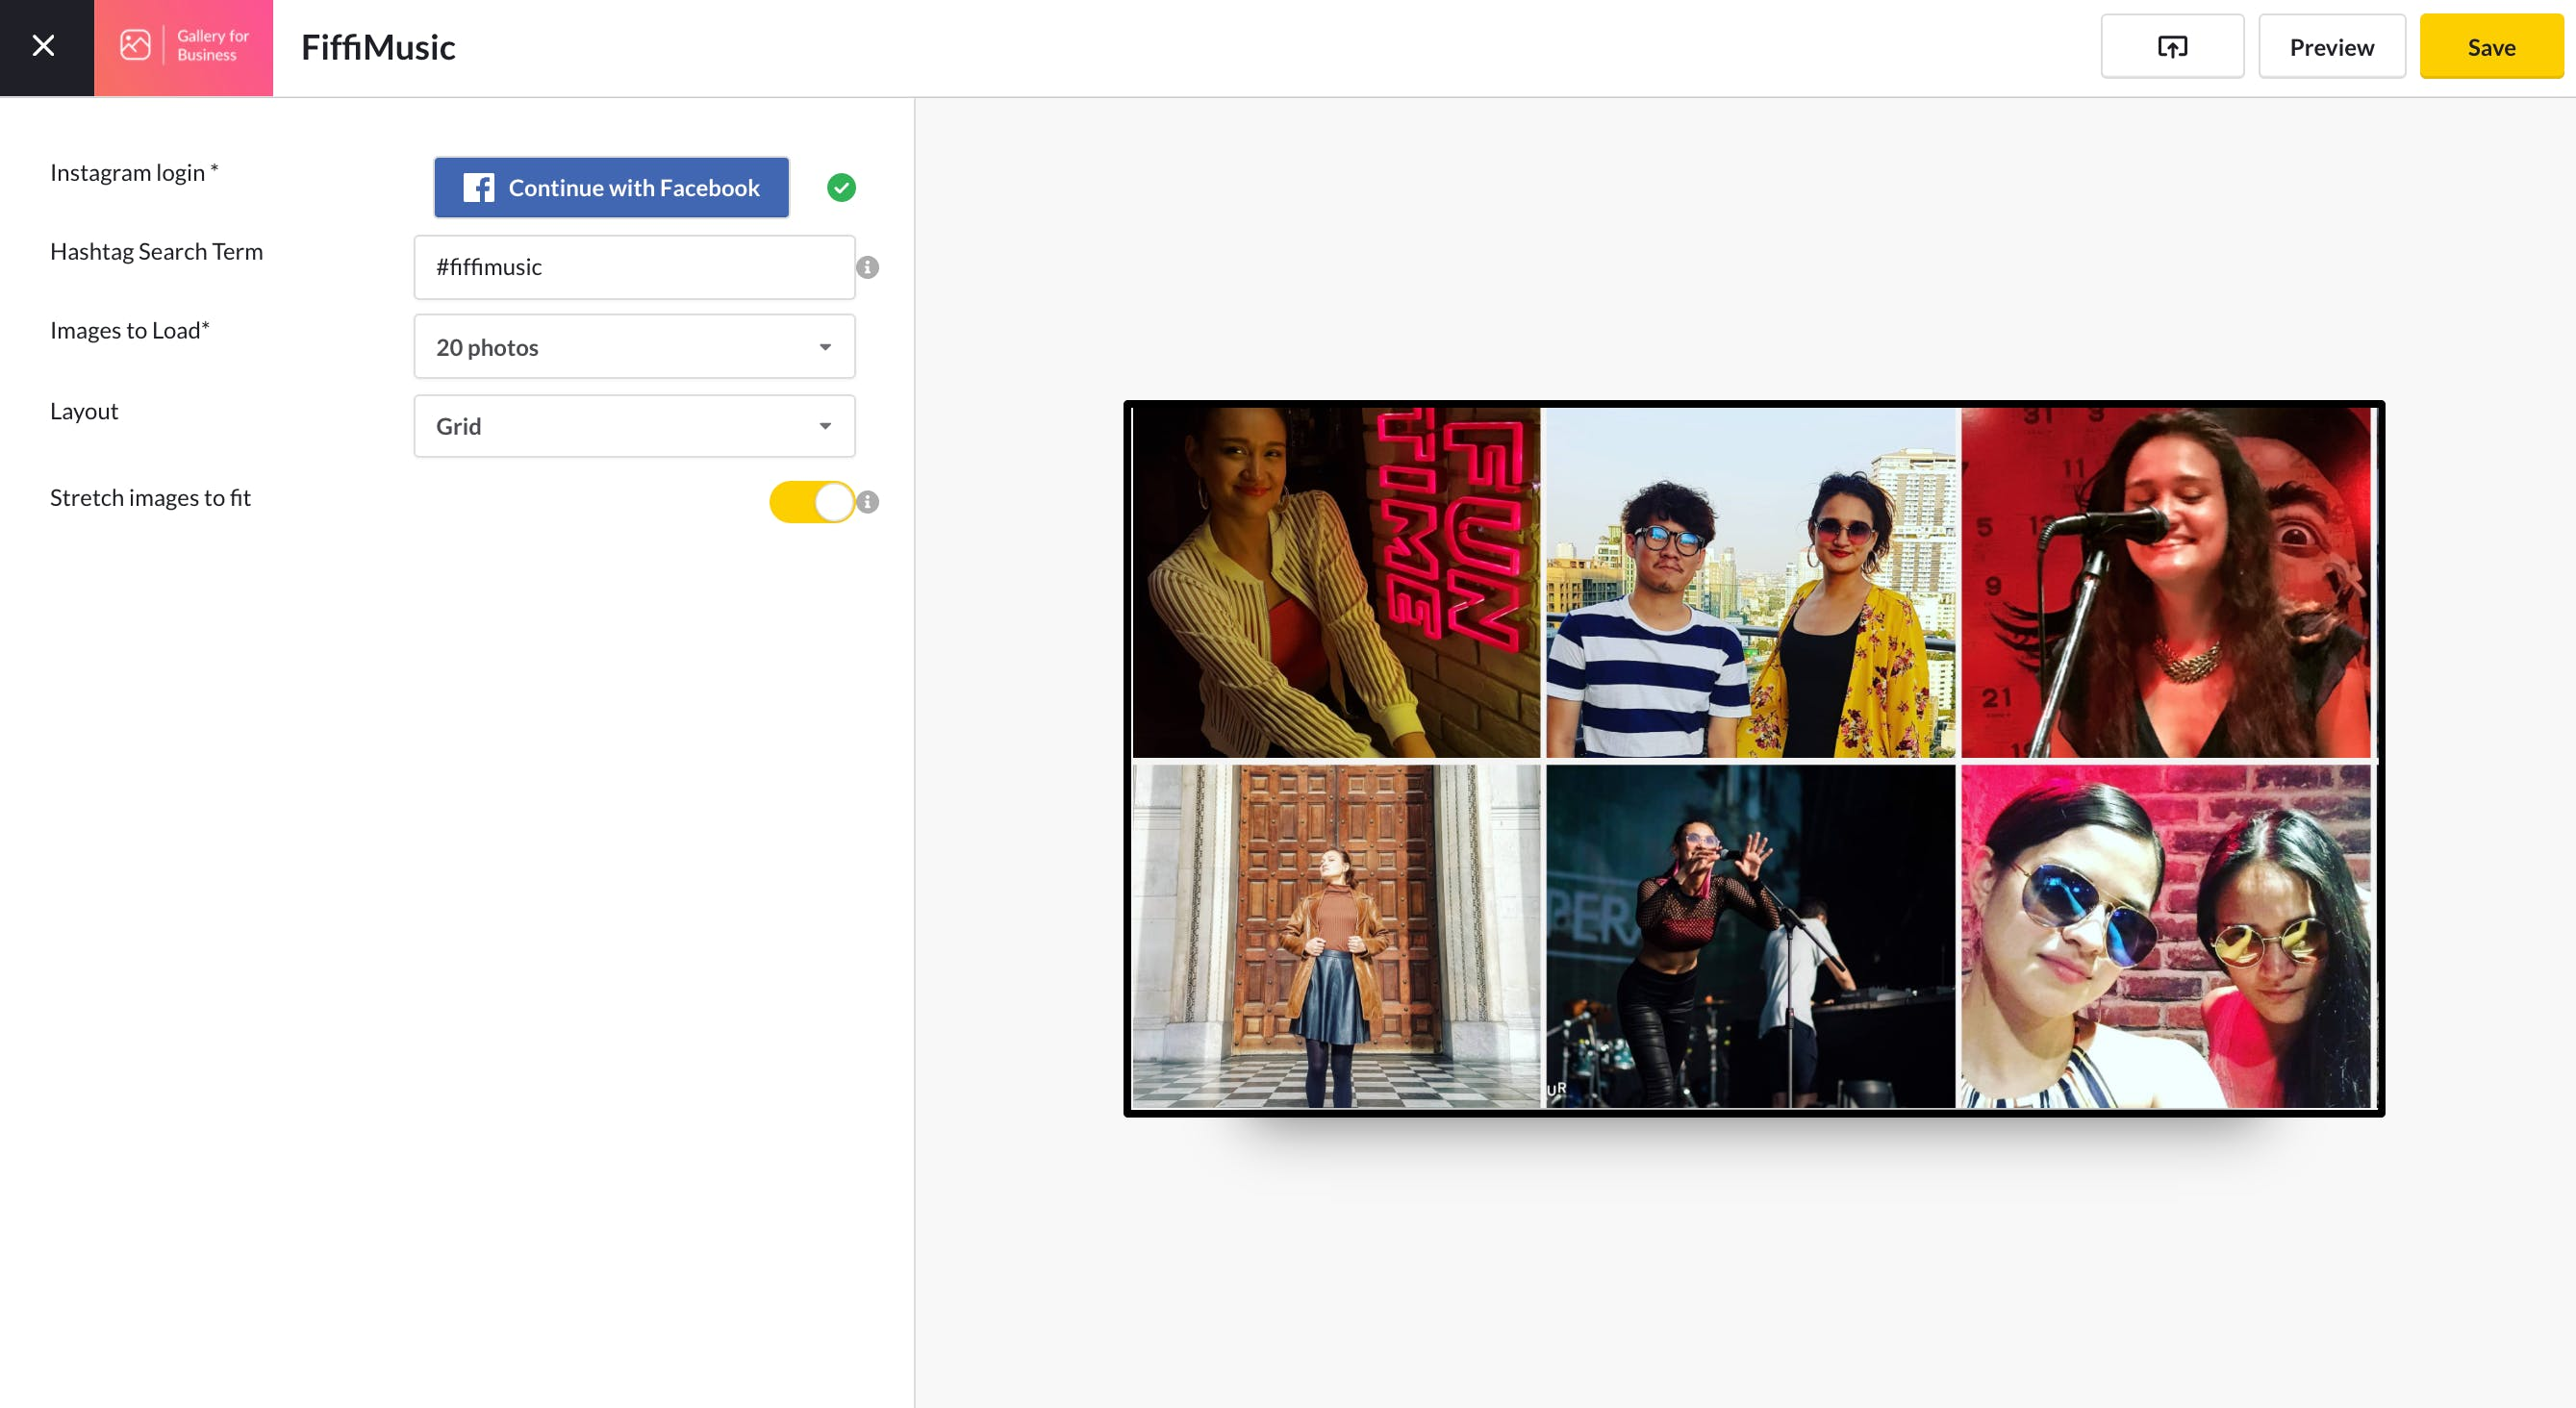 Gallery for Business App Guide - New App Configurations 3.23.2021